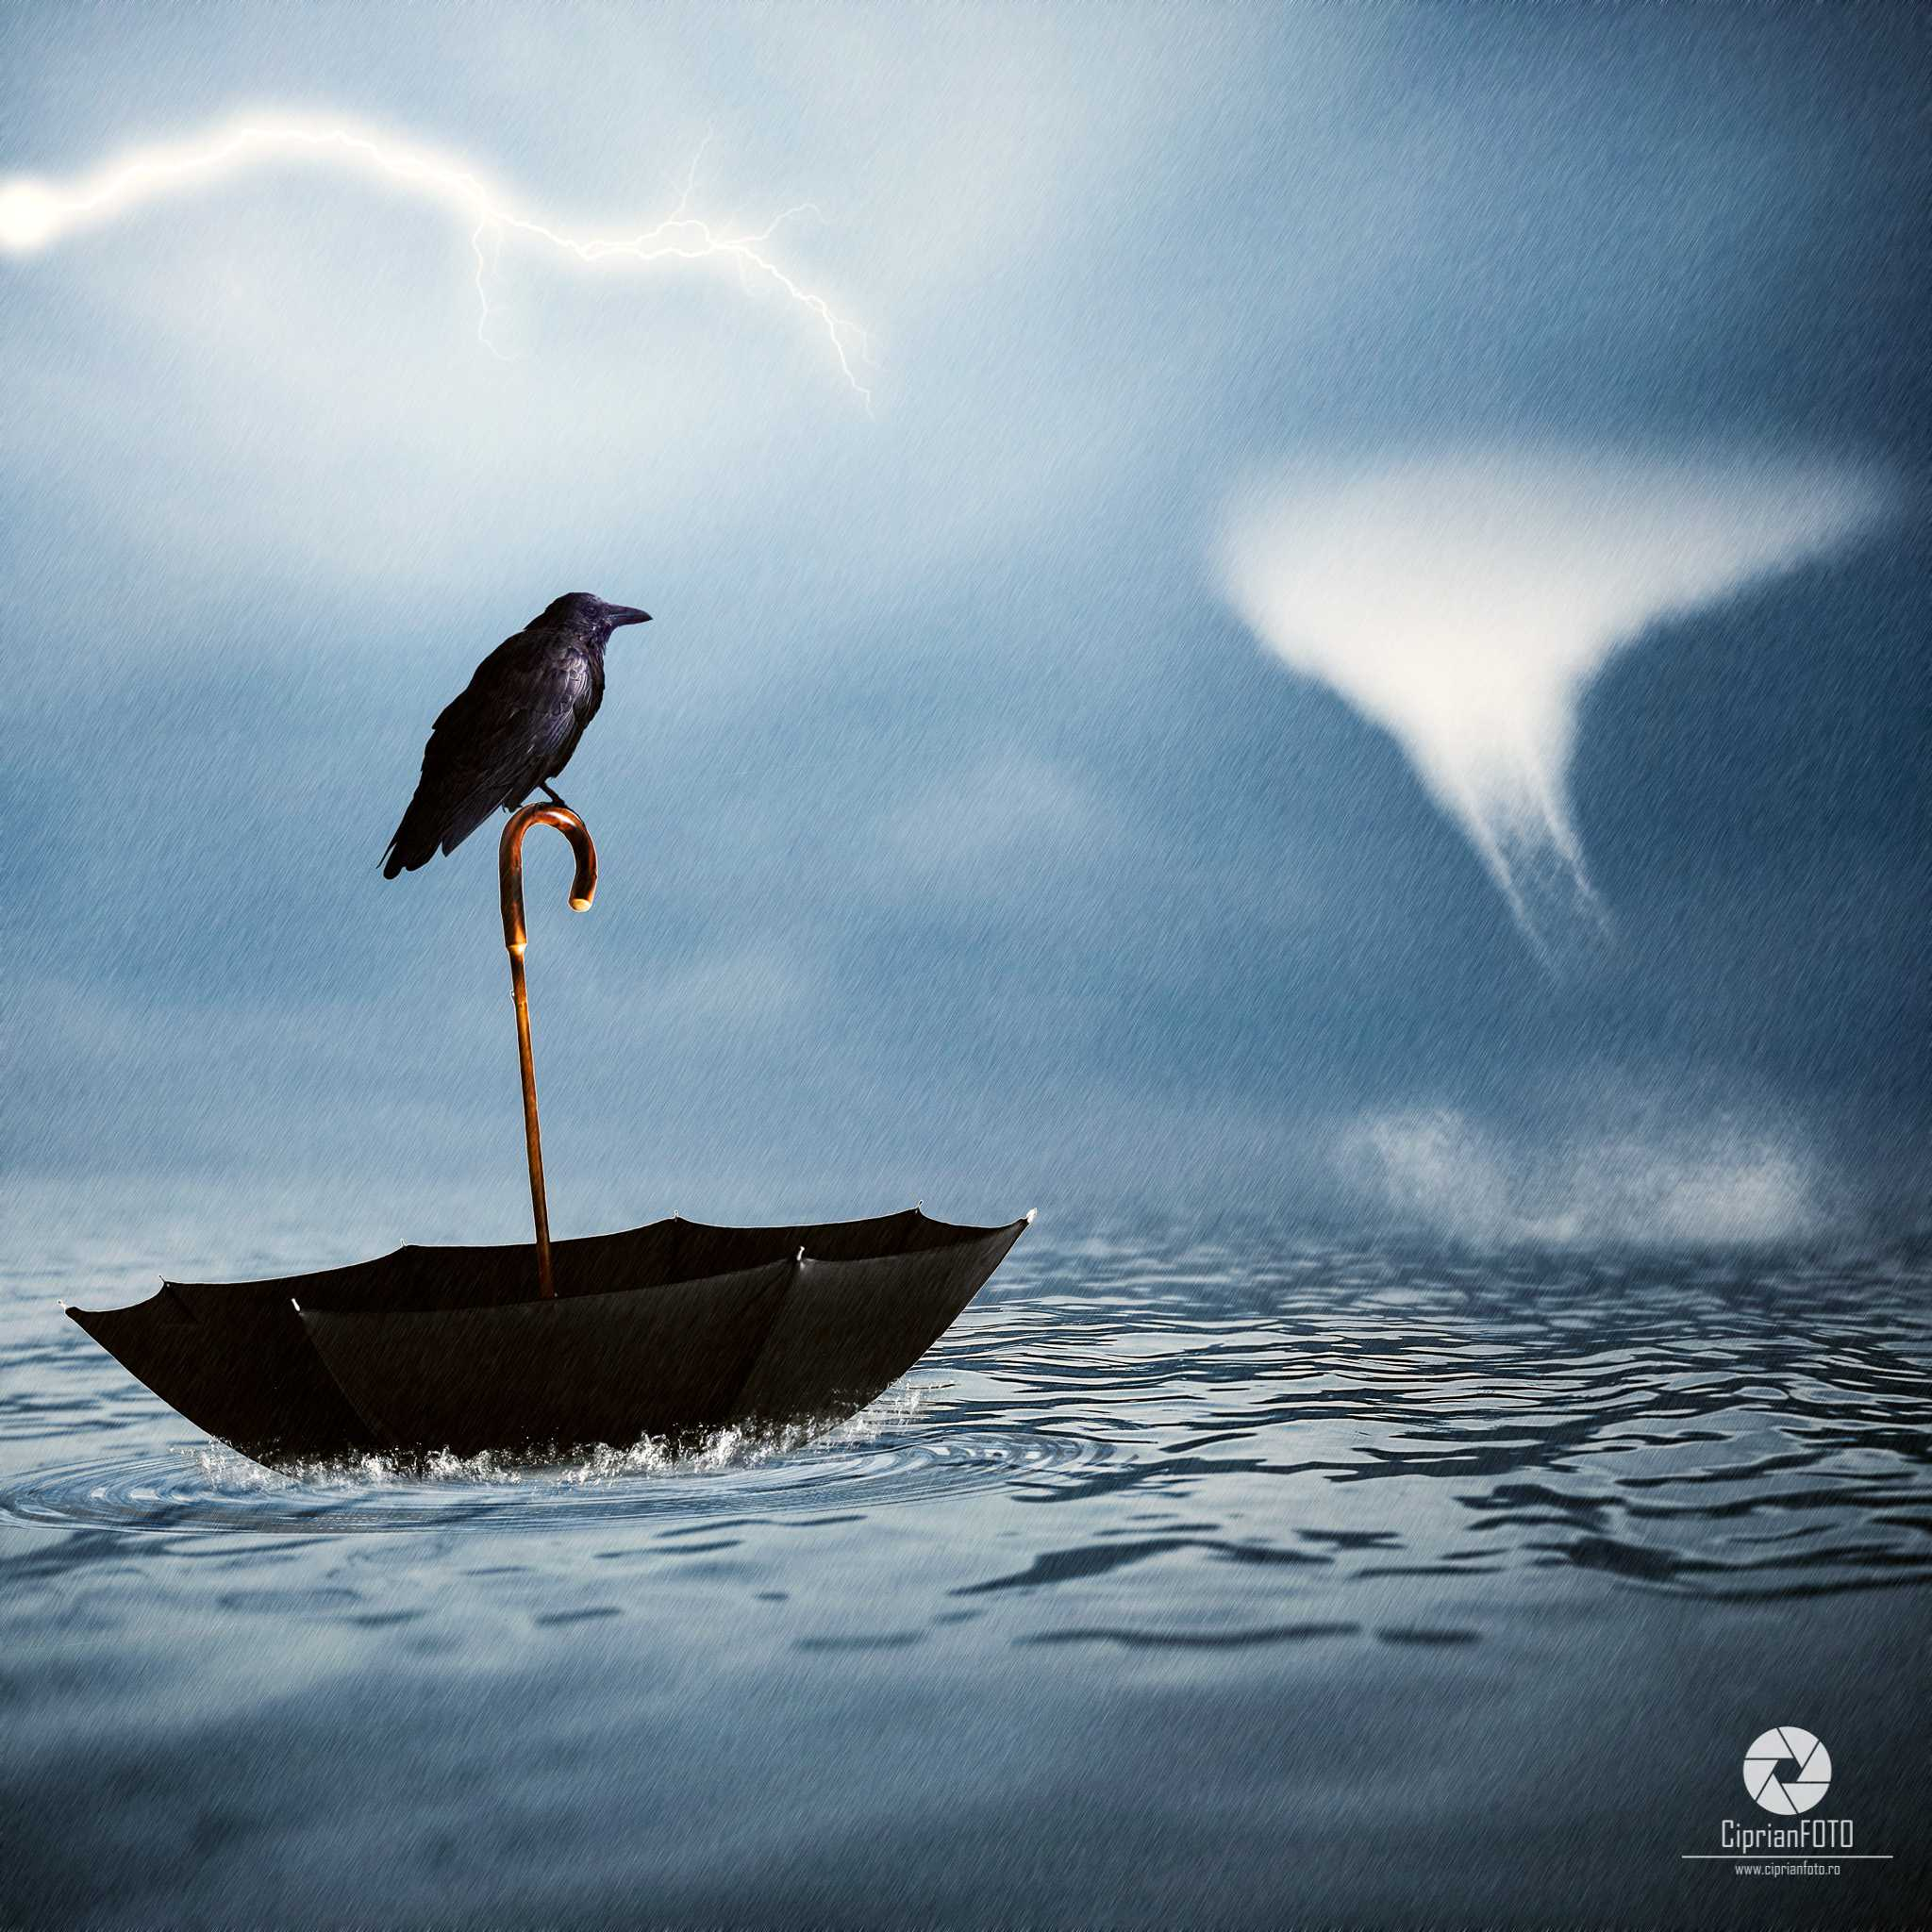 Lost Crow, Photoshop Manipulation Tutorial, CiprianFOTO